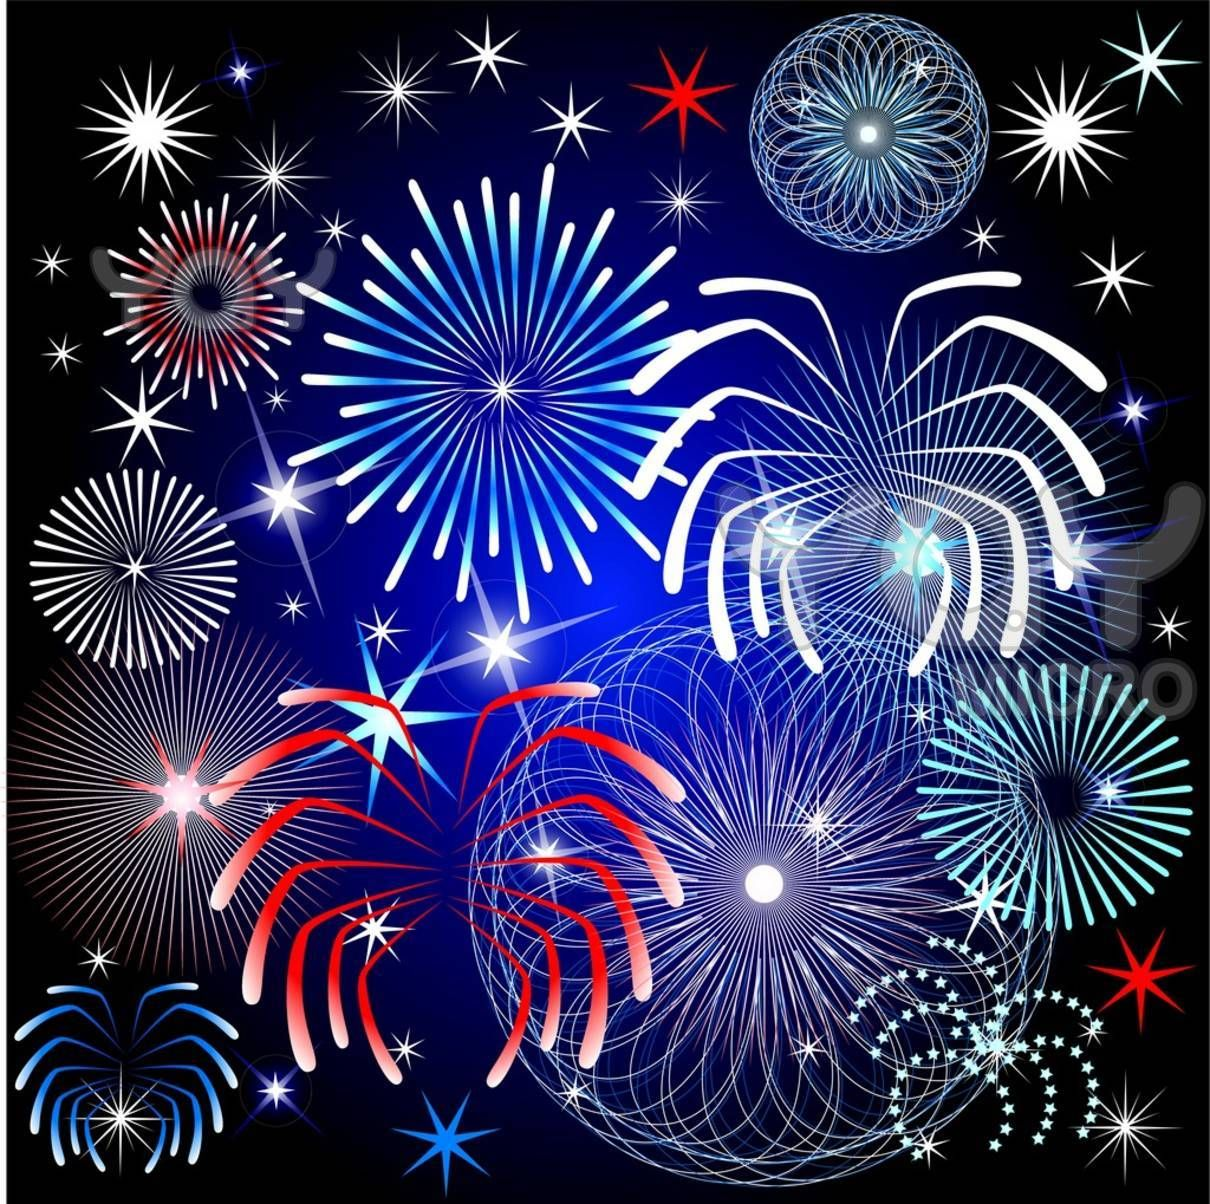 july 4th wallpaper Google Search Holidays Pinterest